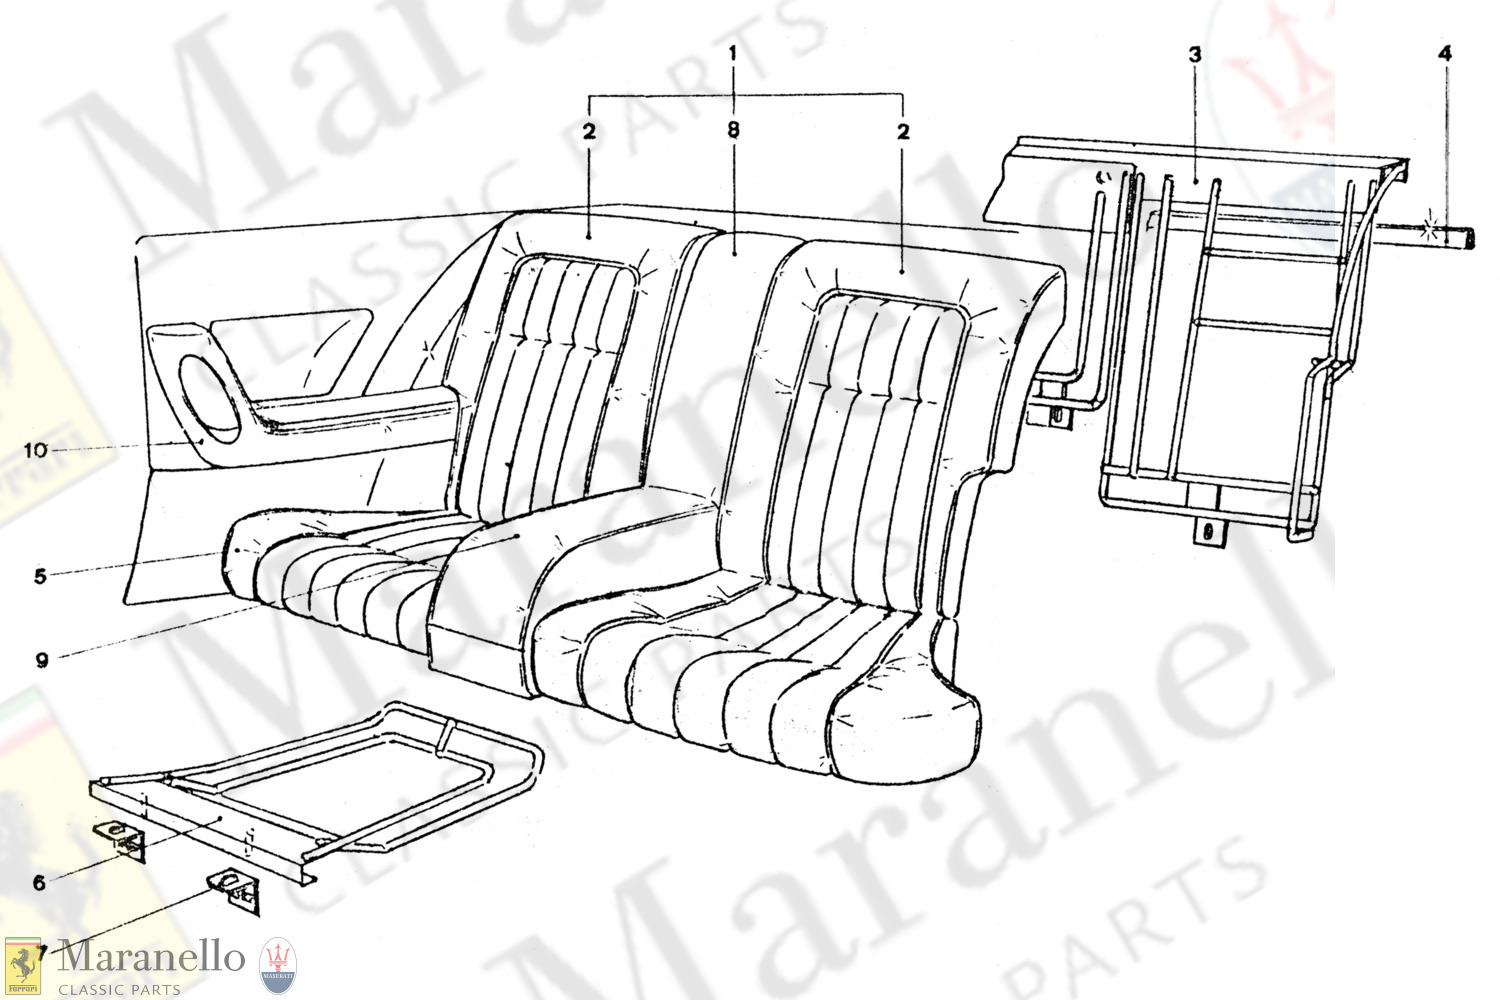 220 - Rear Seat Components